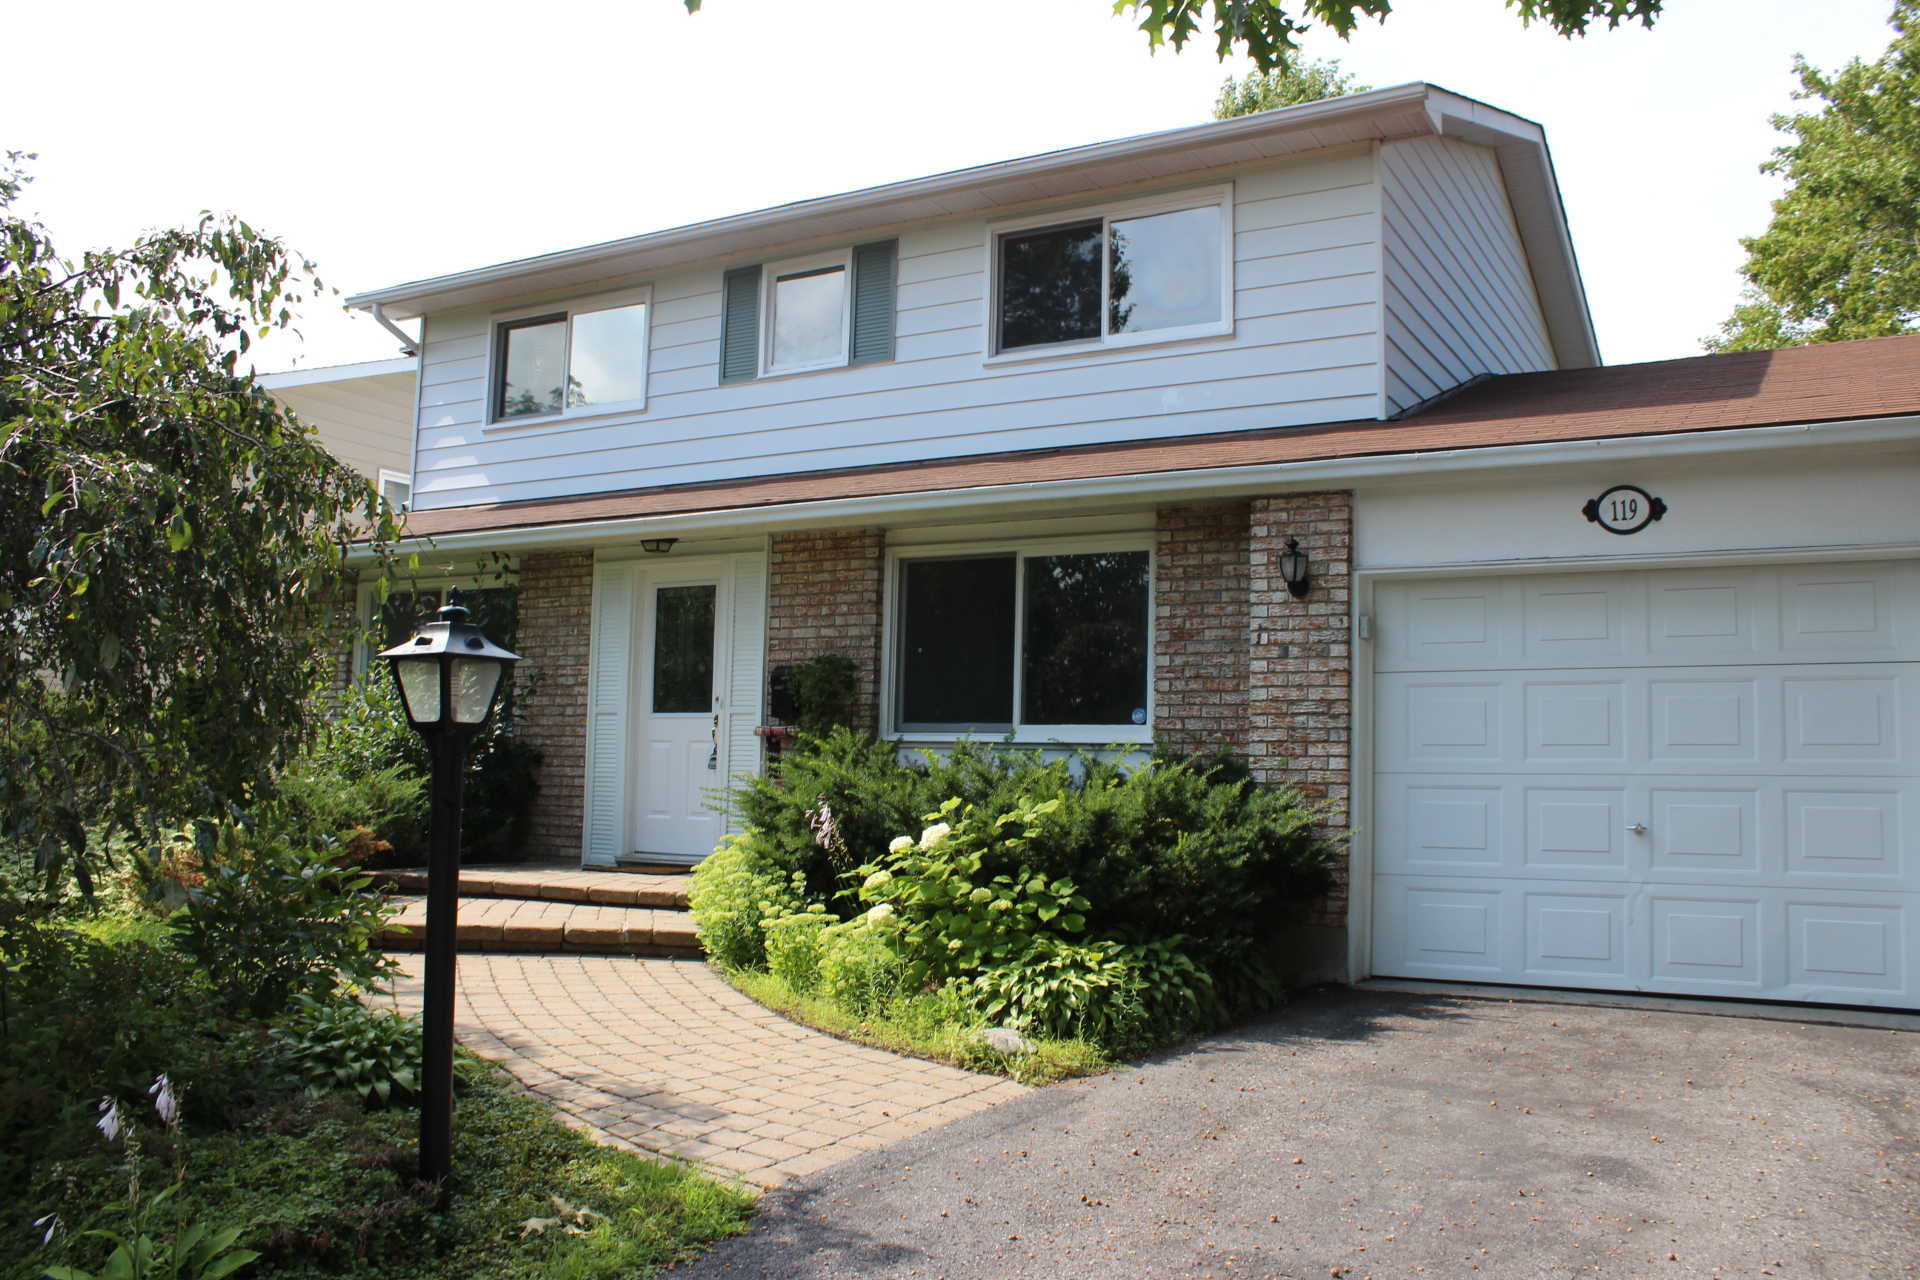 119 Canter Blvd - Detached Single Family Home for Rent in St Claire Gardens-Meadowlands area!